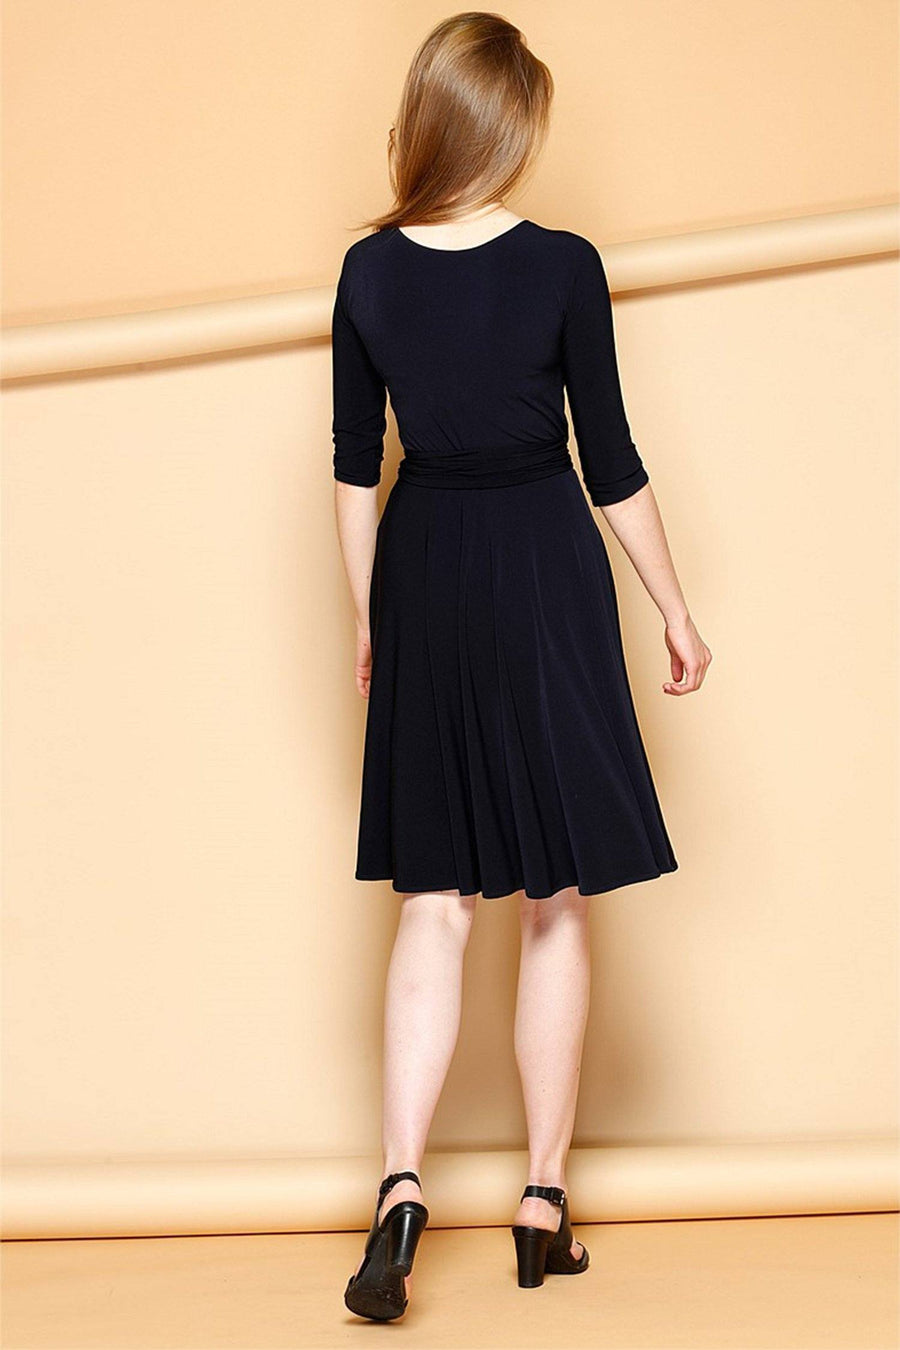 Reverse Wrap Dress in Navy (Full Skirt)